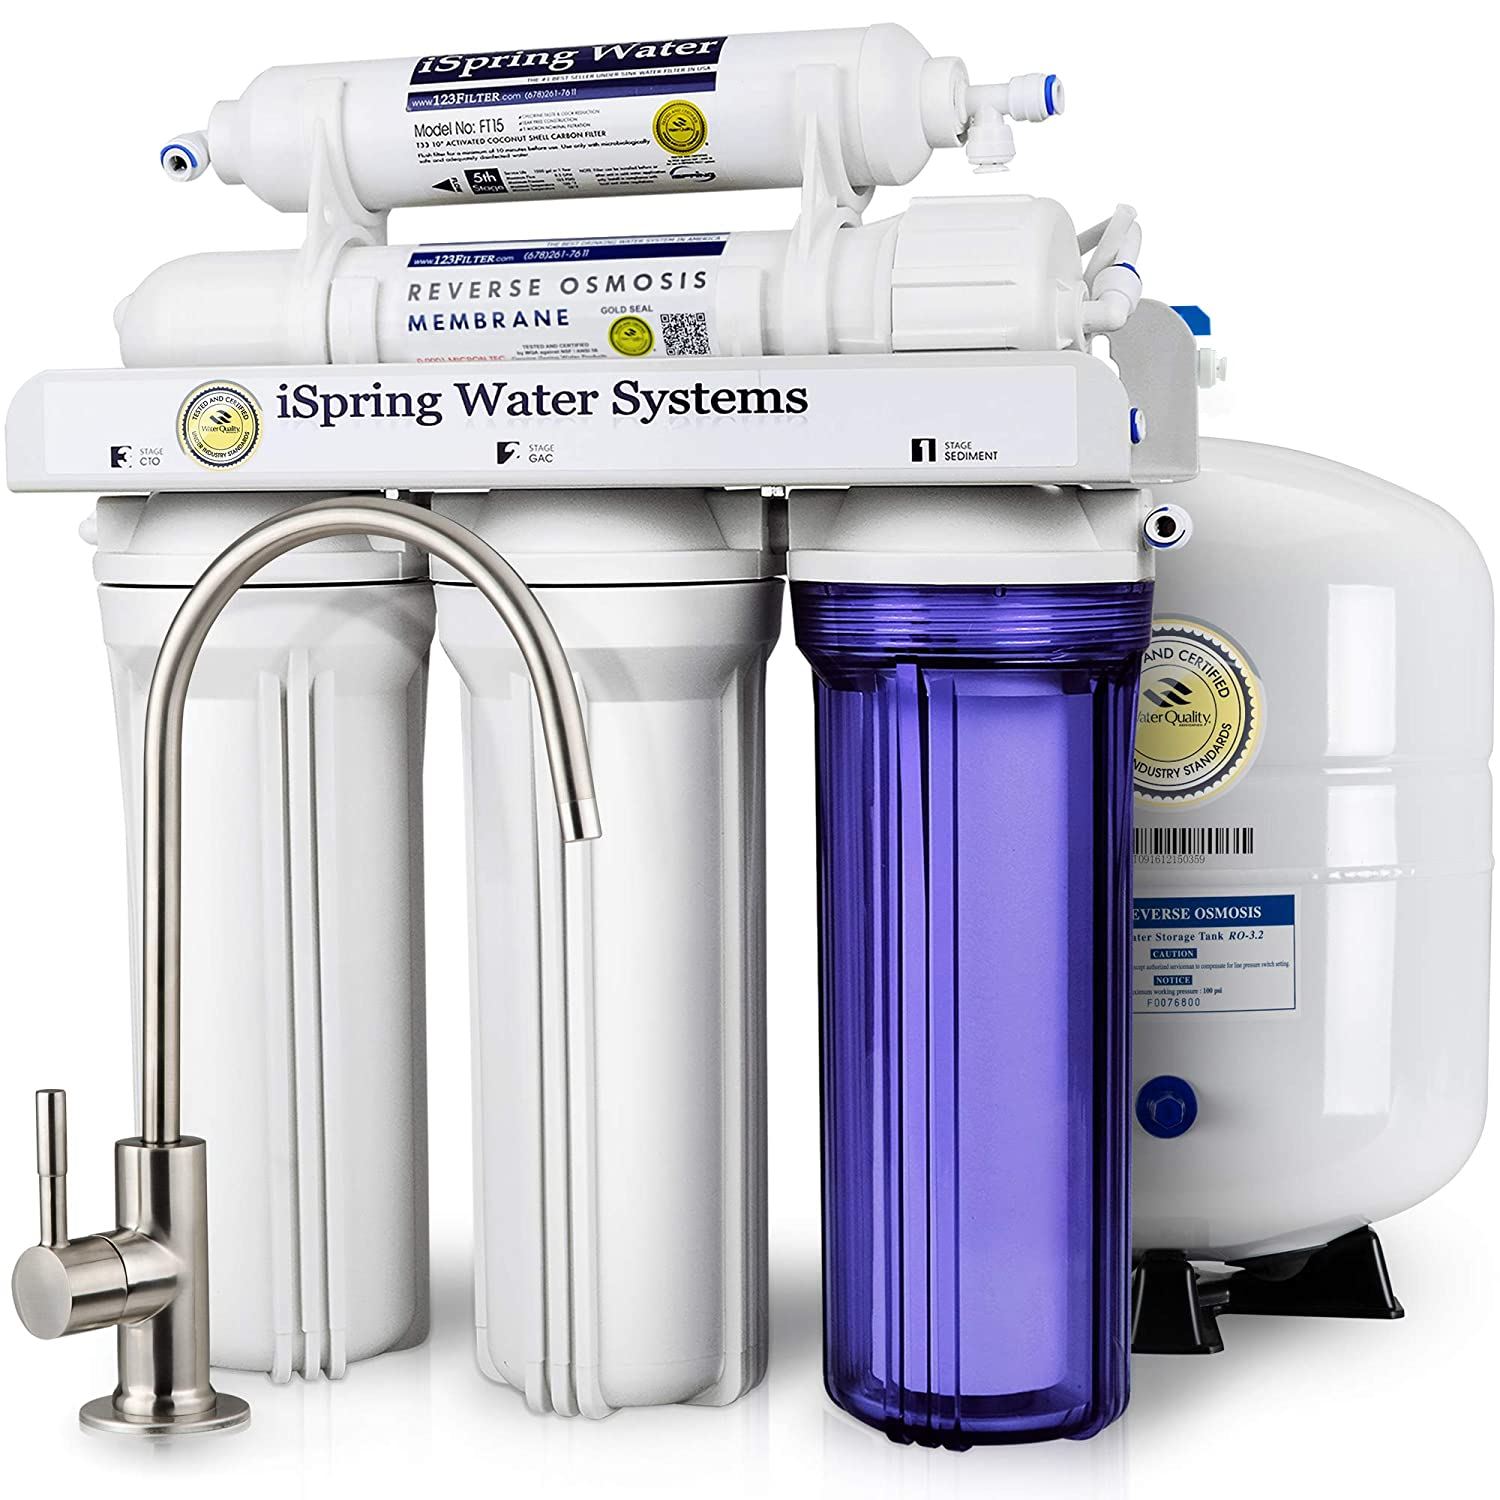 iSpring 5-Stage Prestige Top Purity Under Sink Reverse Osmosis Drinking Water Filter System WQA Gold Seal Certified (NSF/ANSI 58) - RCC7